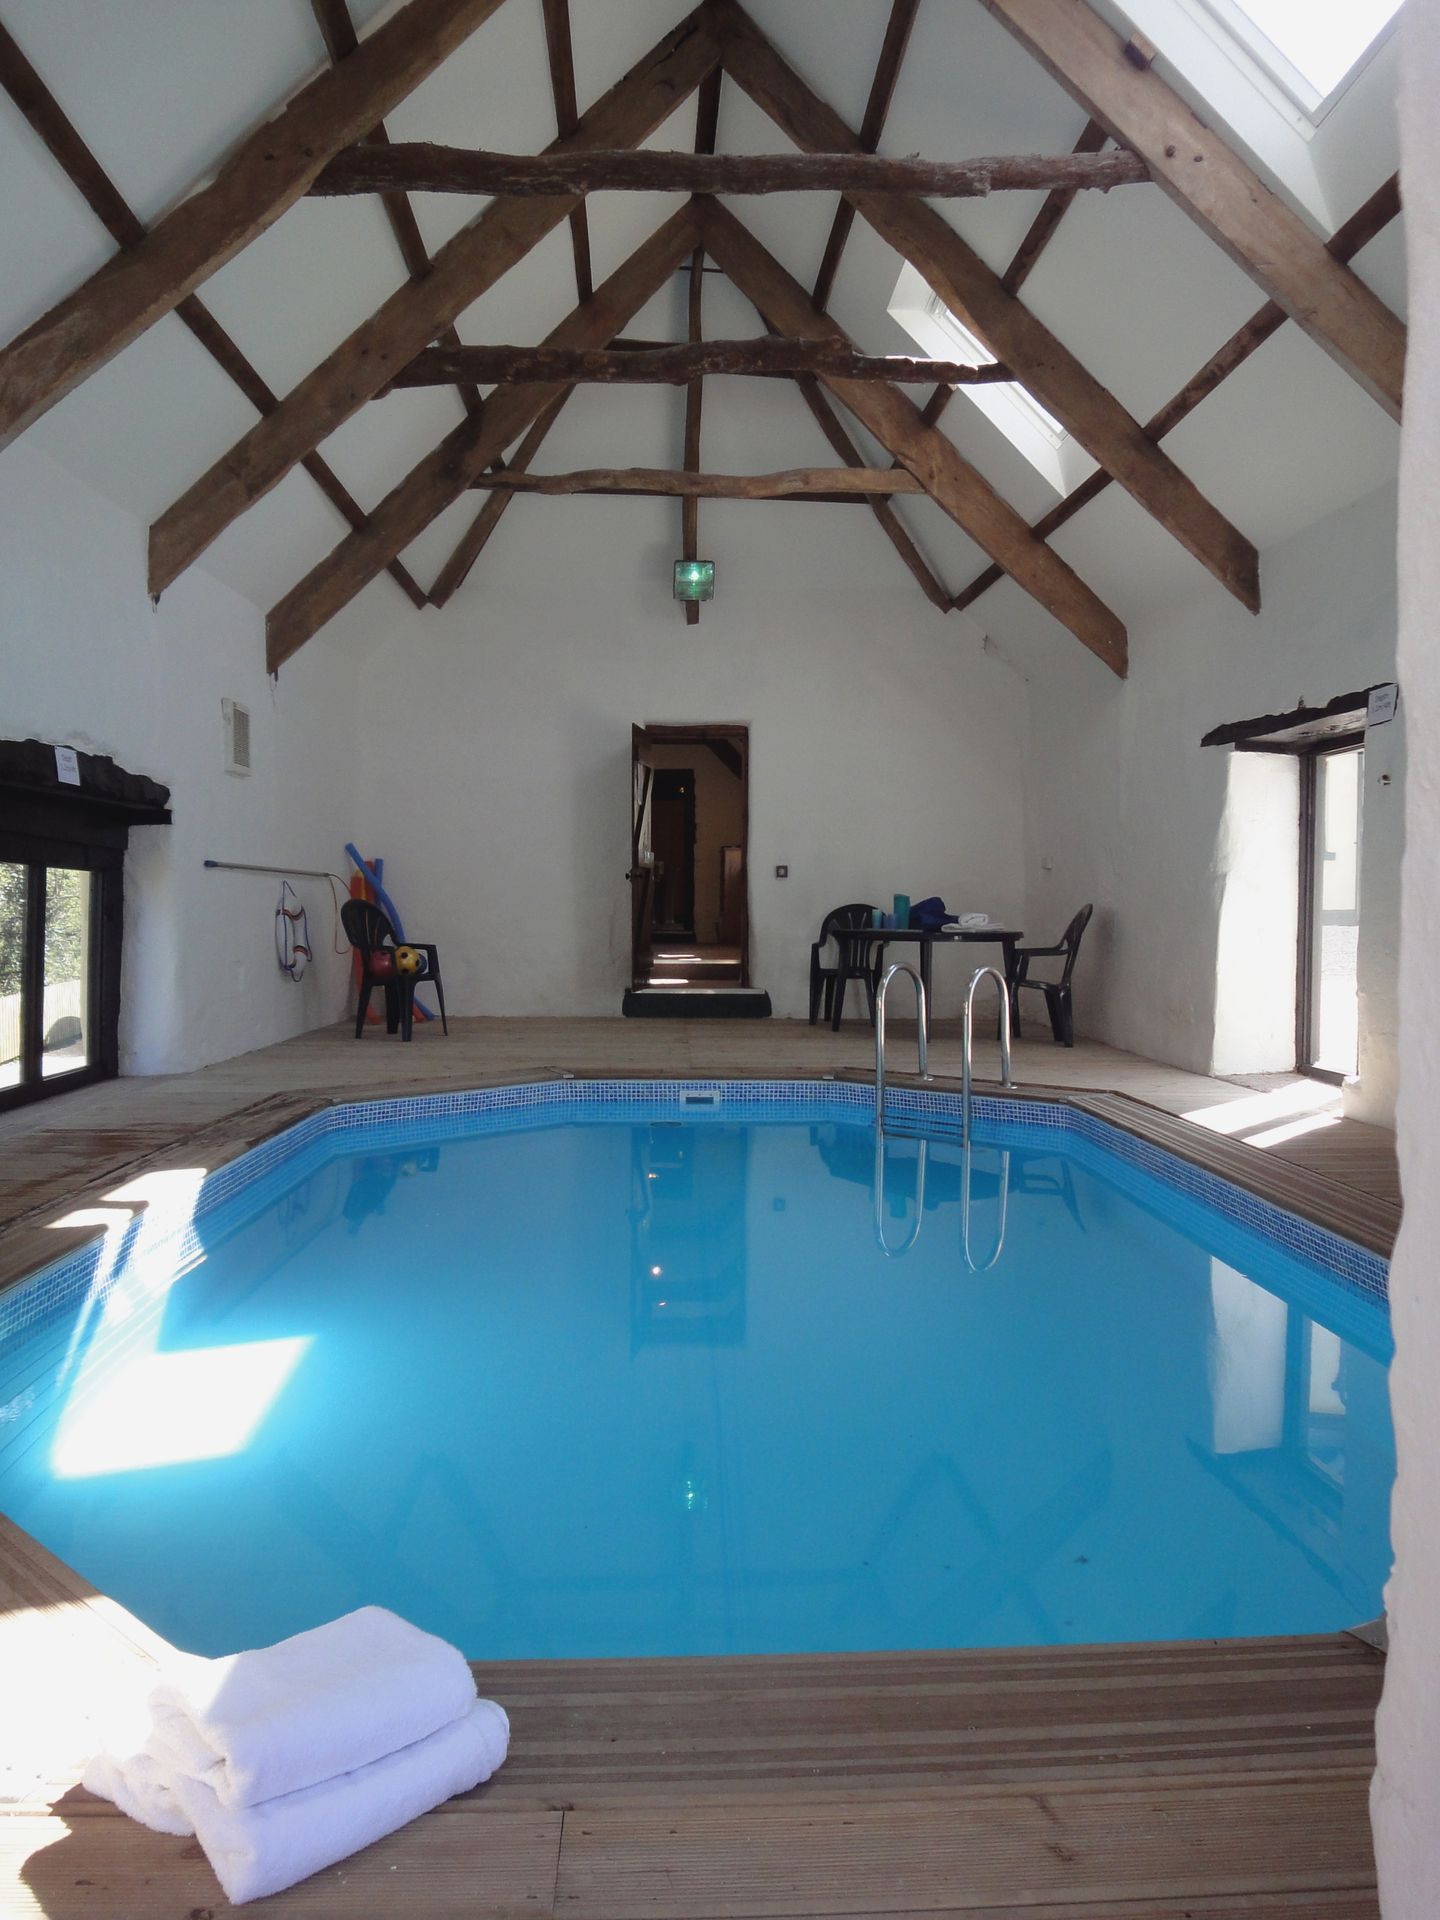 Carthorse cottage luton devon cottage holiday reviews for Holiday cottages with swimming pools uk